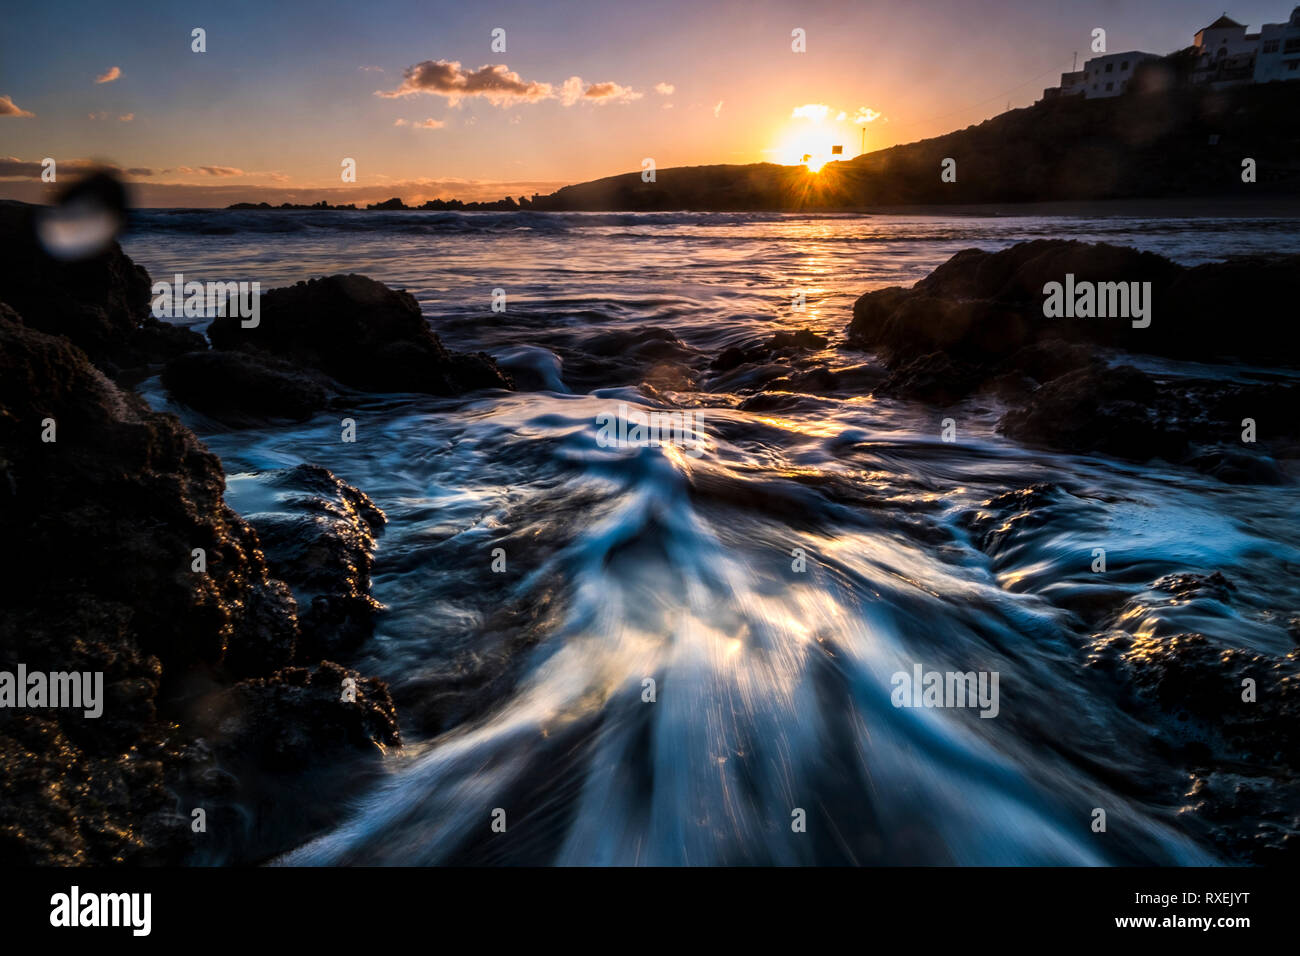 Motion effect with waves and water at the beach with sea and sunrise - vacation and landscape scenery concept - sunlight from sunrise and coloured sky Stock Photo